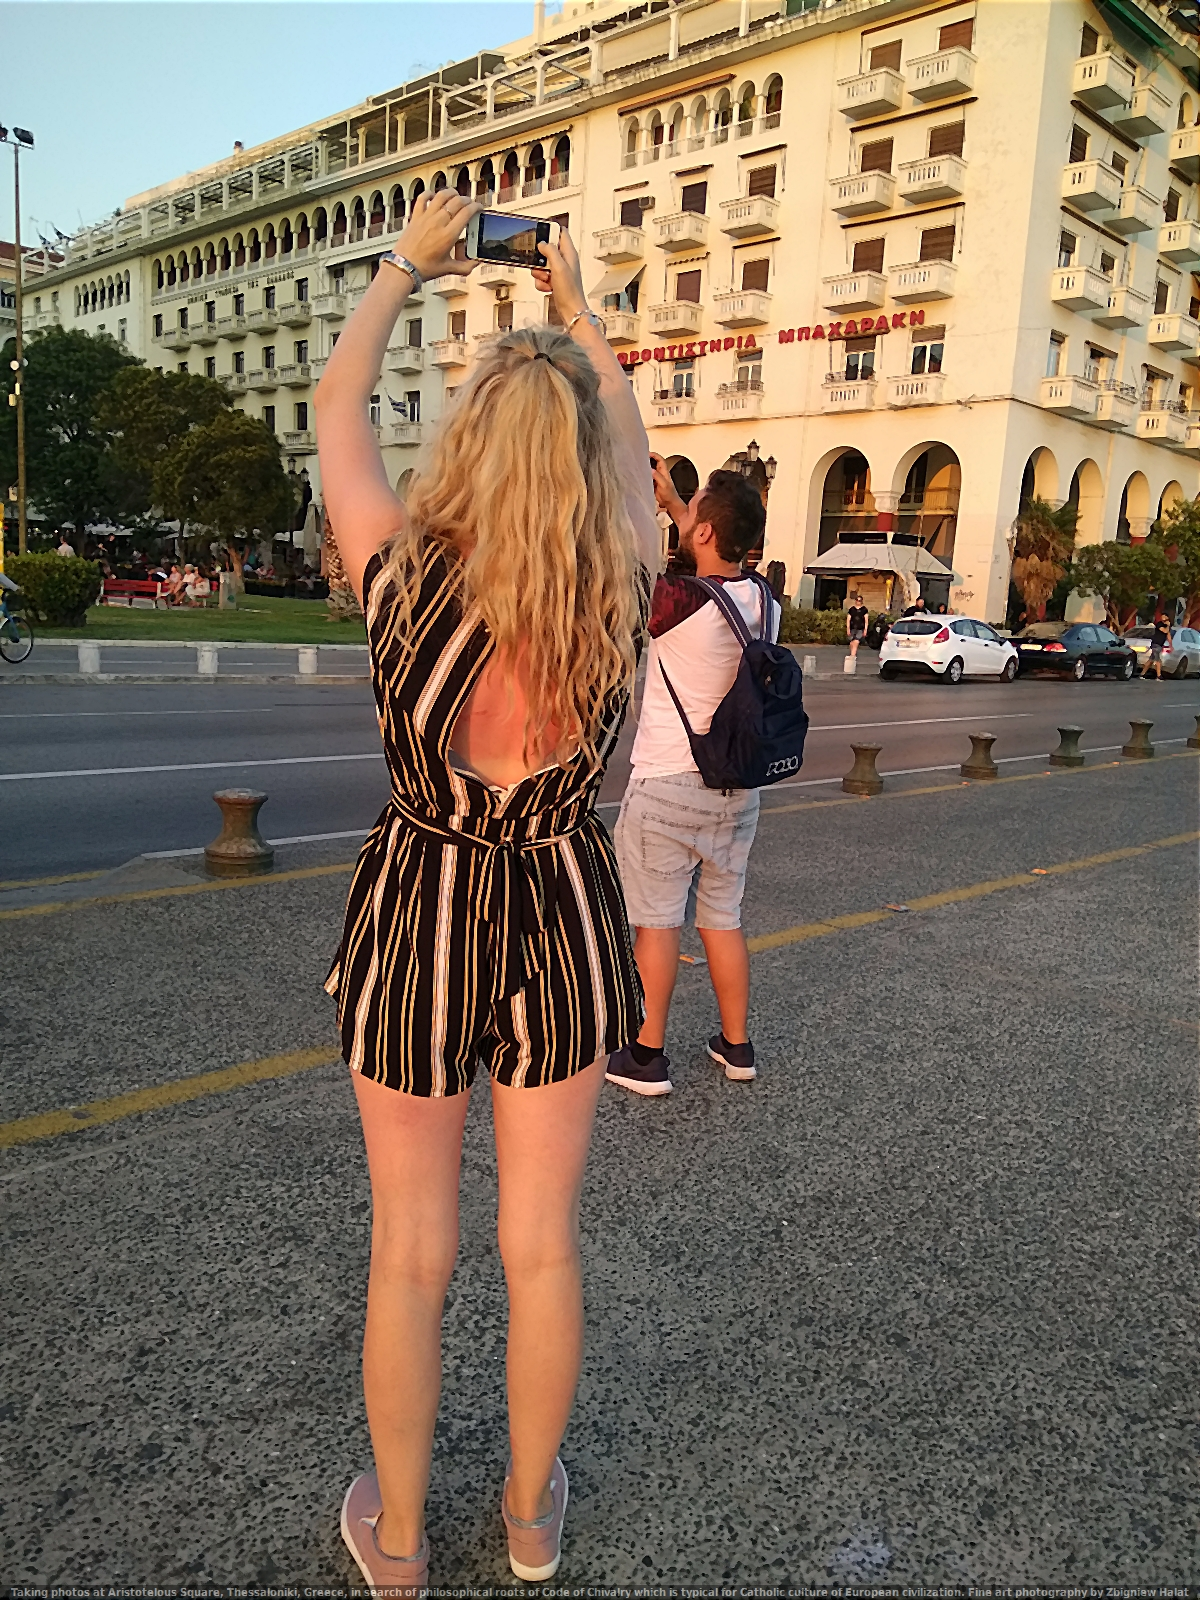 Taking photos at Aristotelous Square, Thessaloniki, Greece, in search of philosophical roots of Code of Chivalry which is typical for Catholic culture of European civilization. Fine art photography by Zbigniew Halat